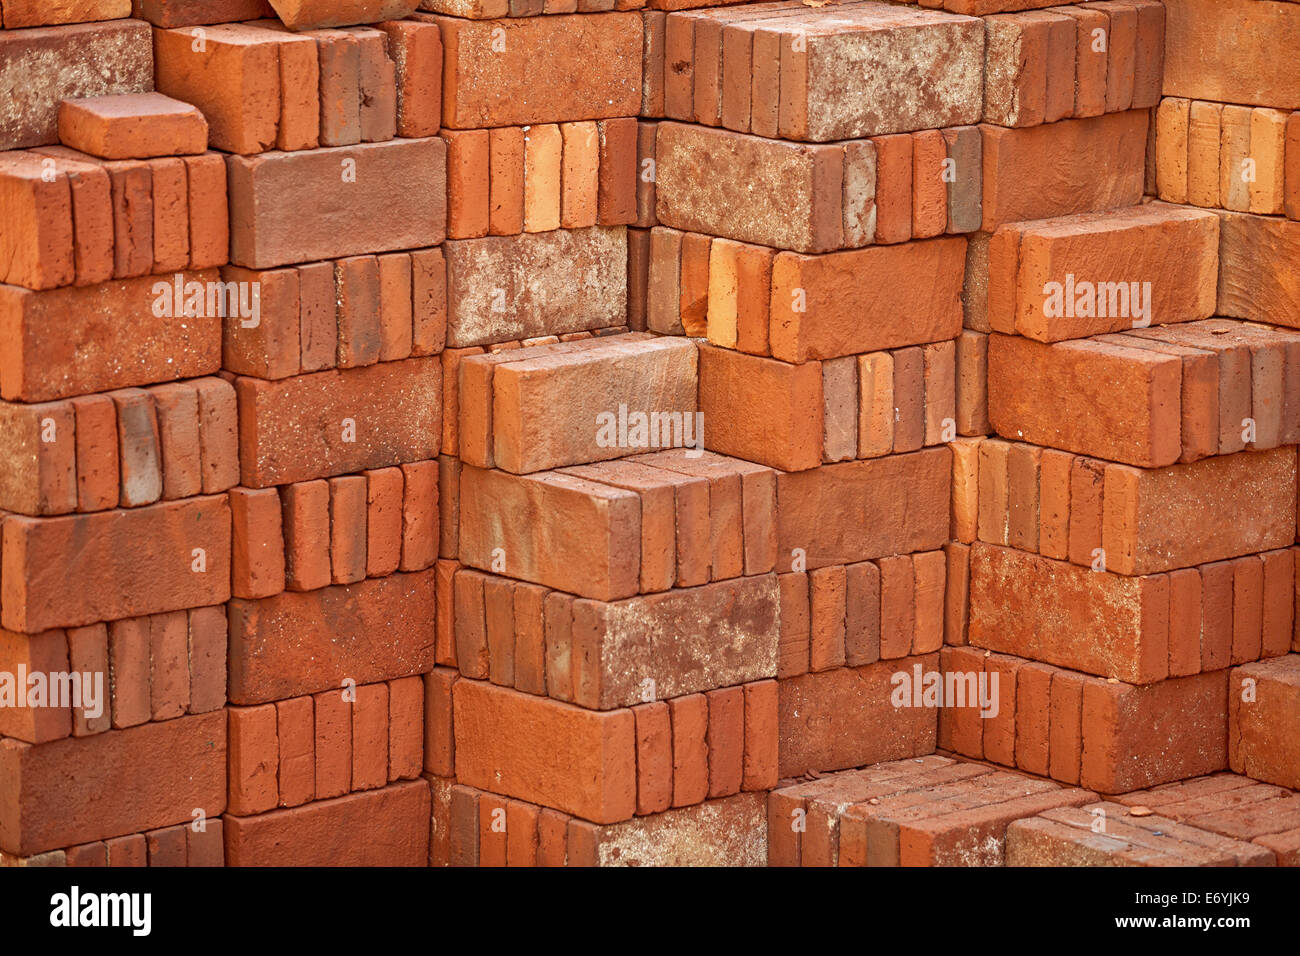 Pile of clay red bricks prepared forbuilding - Stock Image